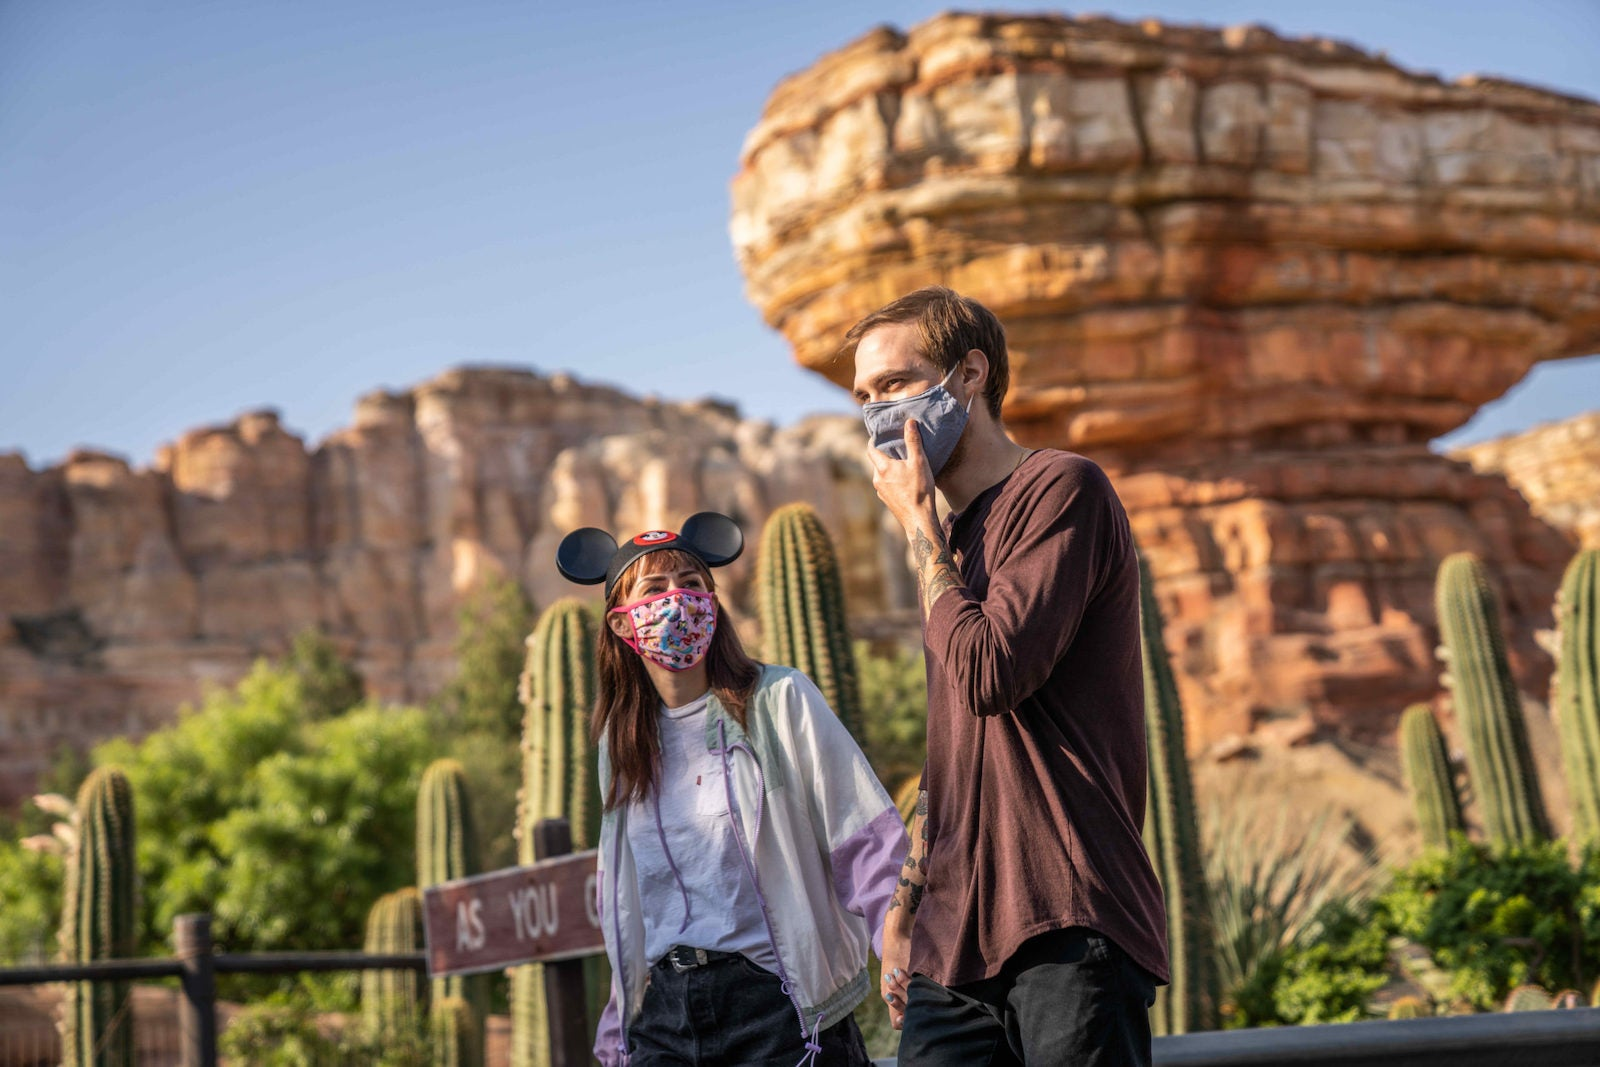 Cleared for Takeoff: A budget-friendly family trip to Disneyland and San Diego - The Points Guy